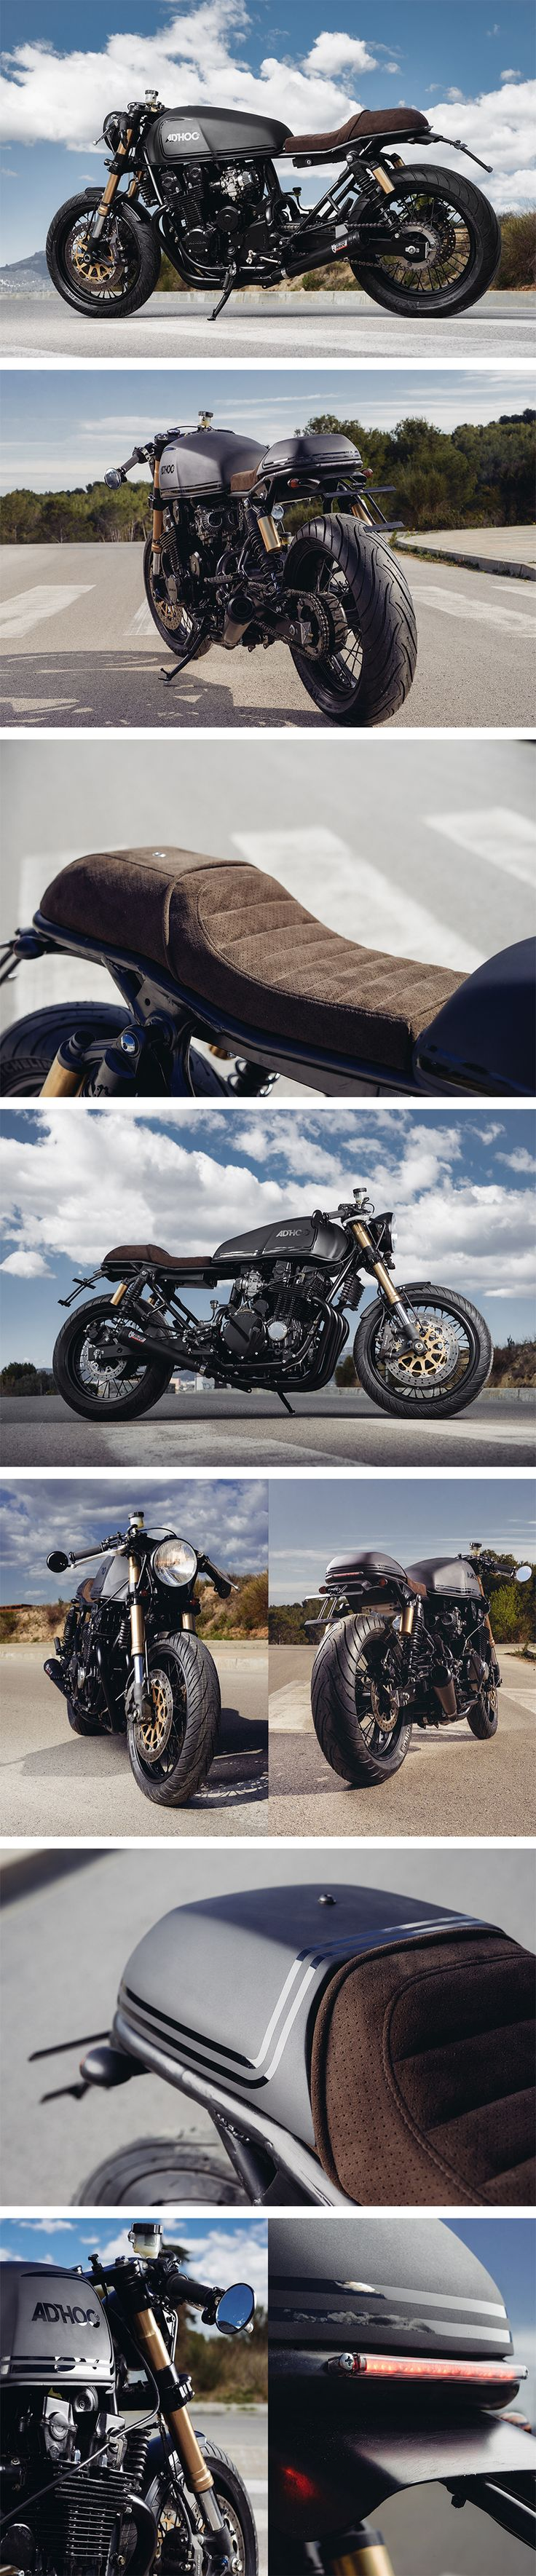 Honda CB750 by Adhoc Cafe Racers